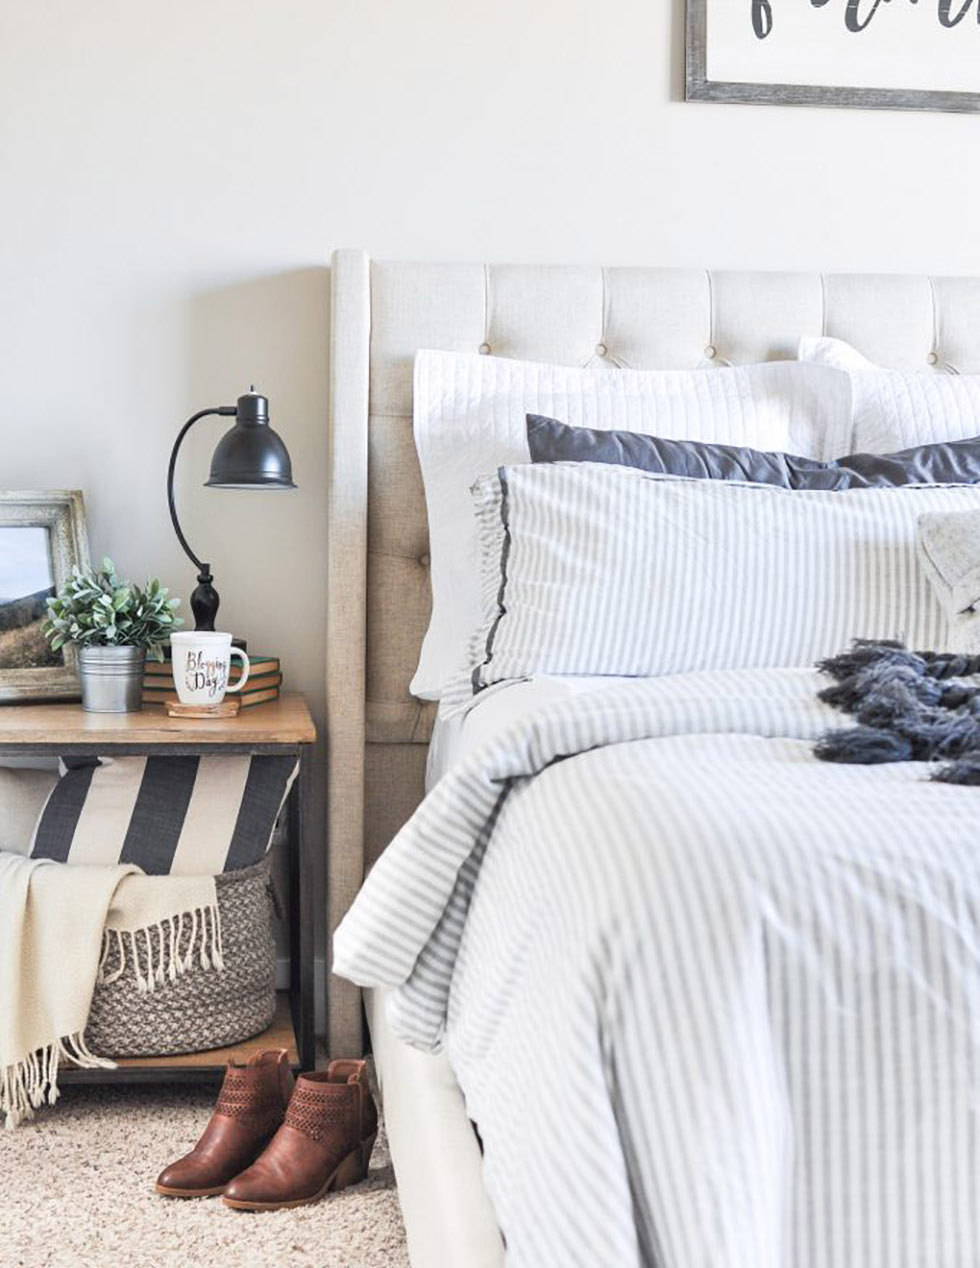 Bed with blue and white striped comforter & padded bed frame